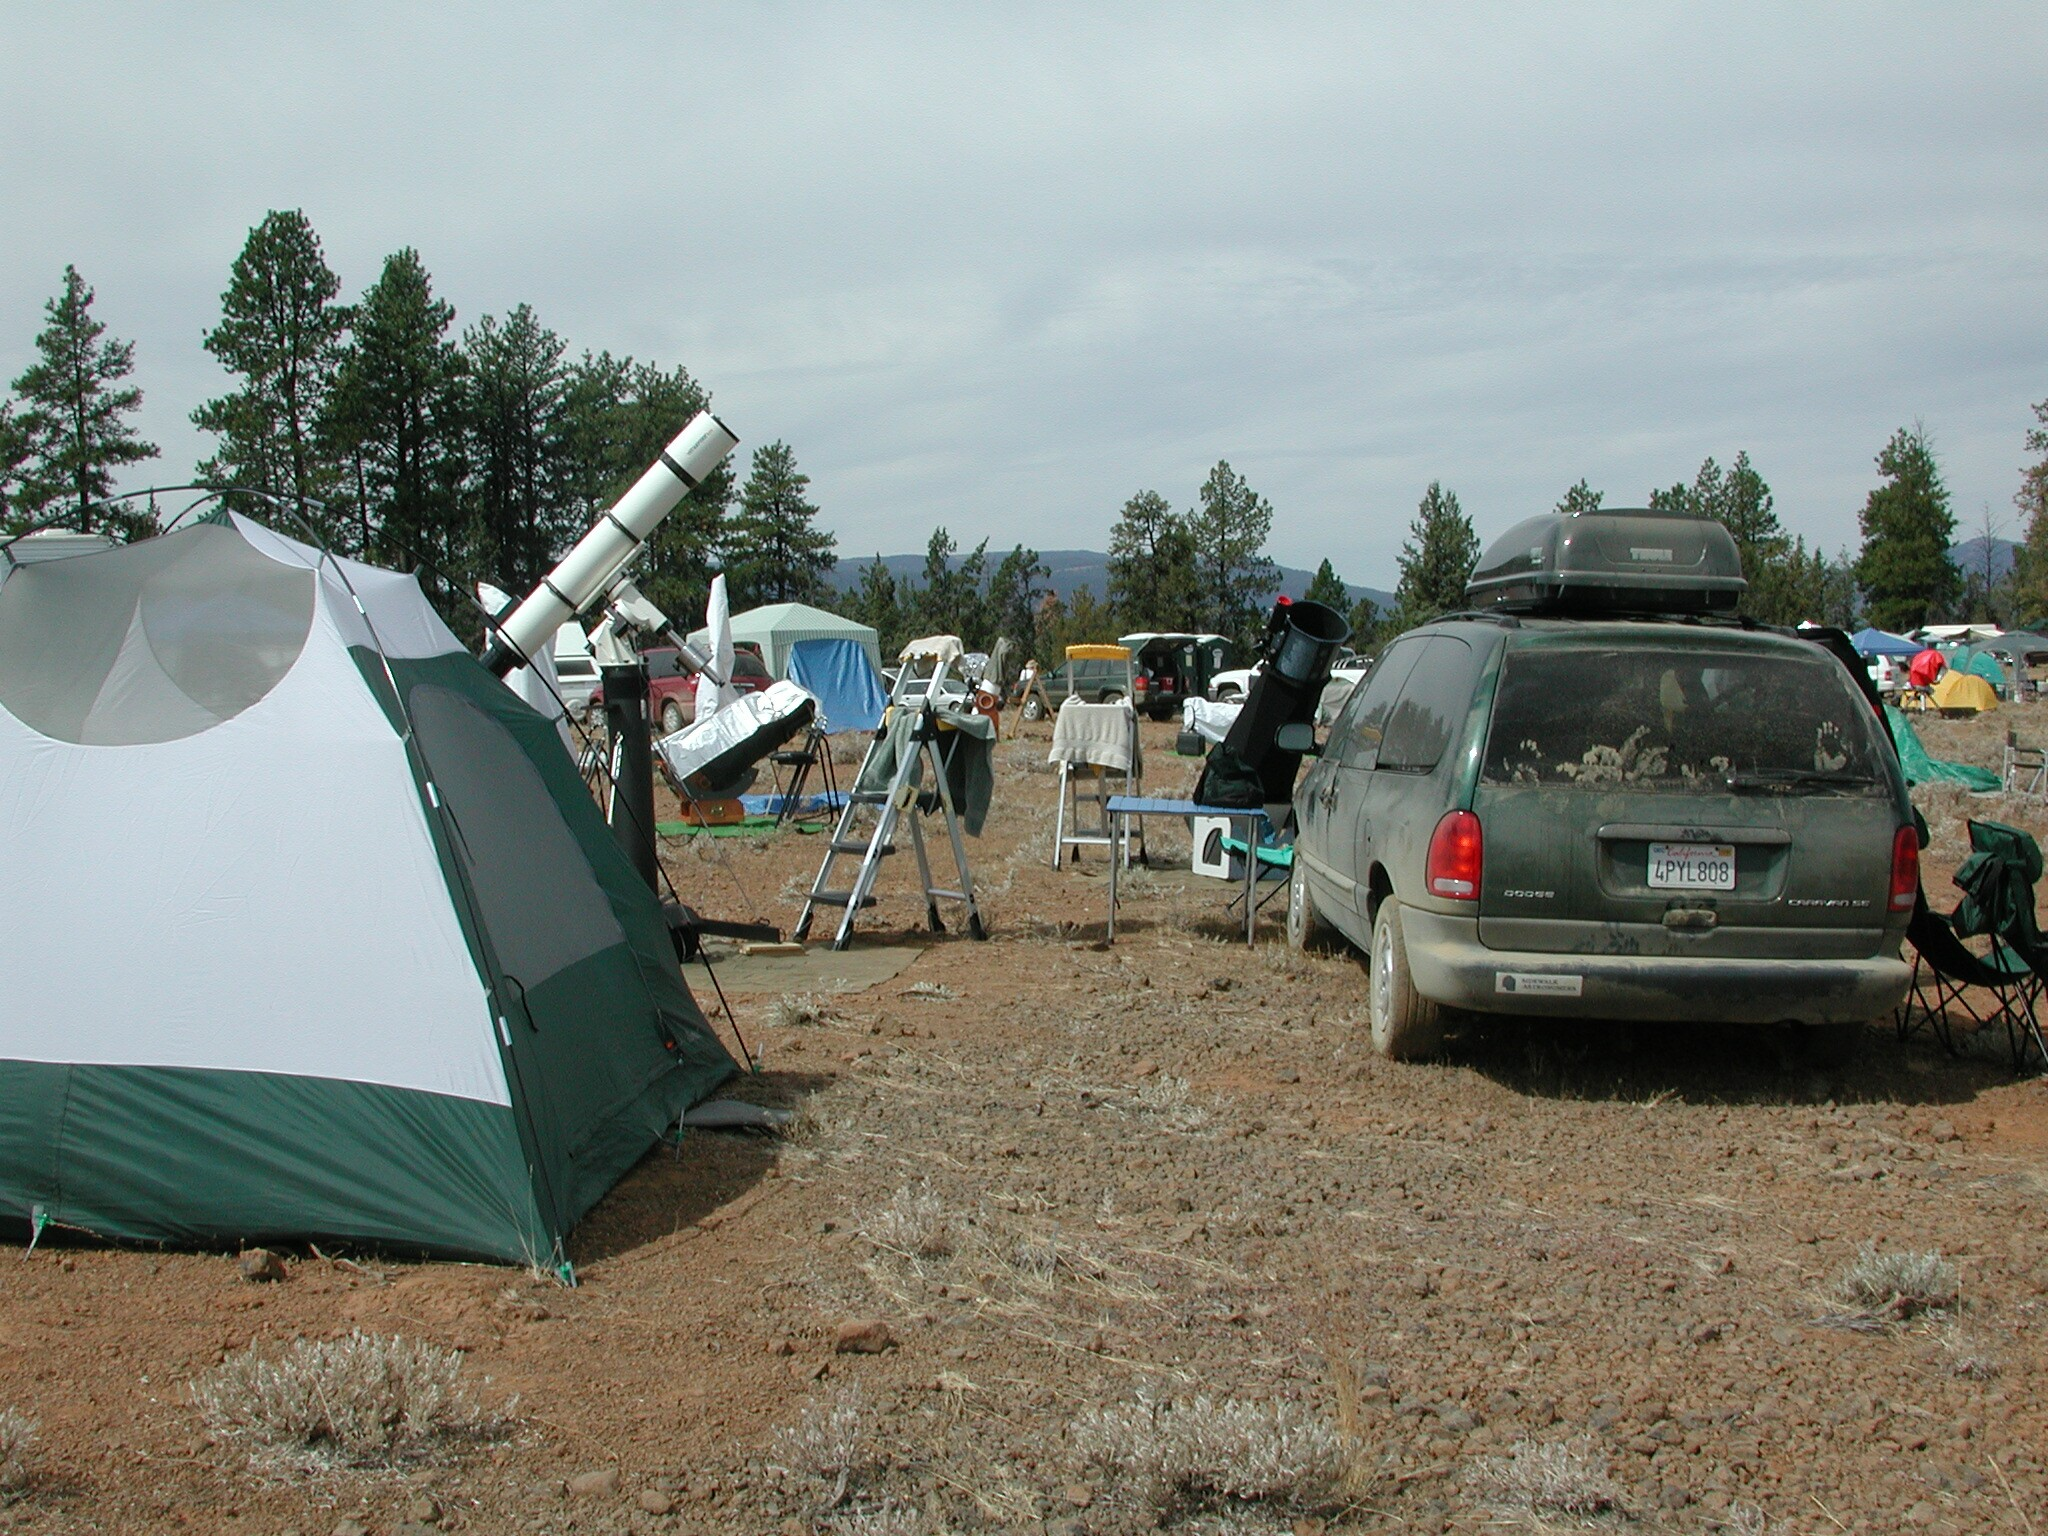 Our tent and telescopes, OSP, Ochoco National Forest, OR